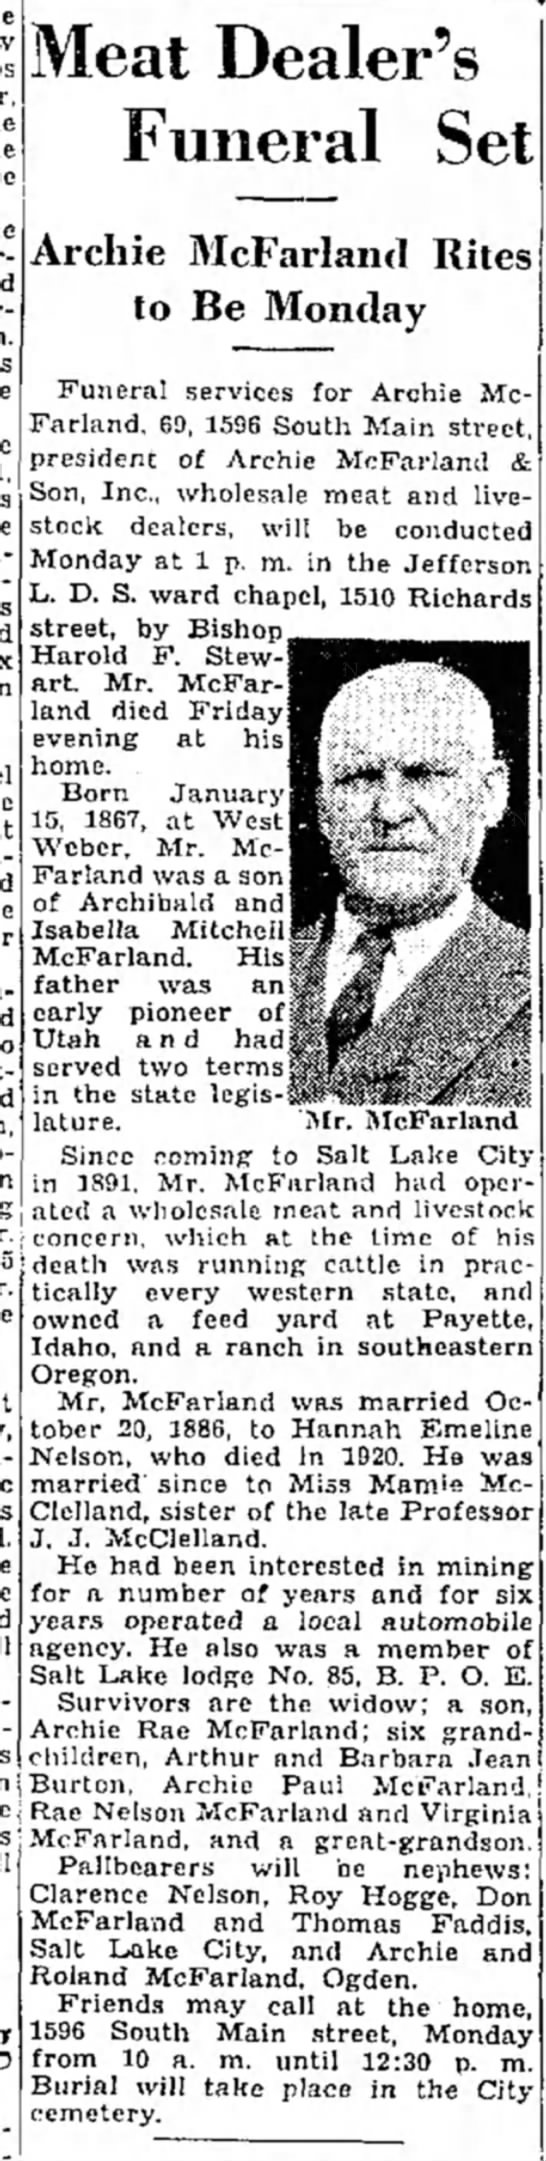 Obituary of Archie McFarland